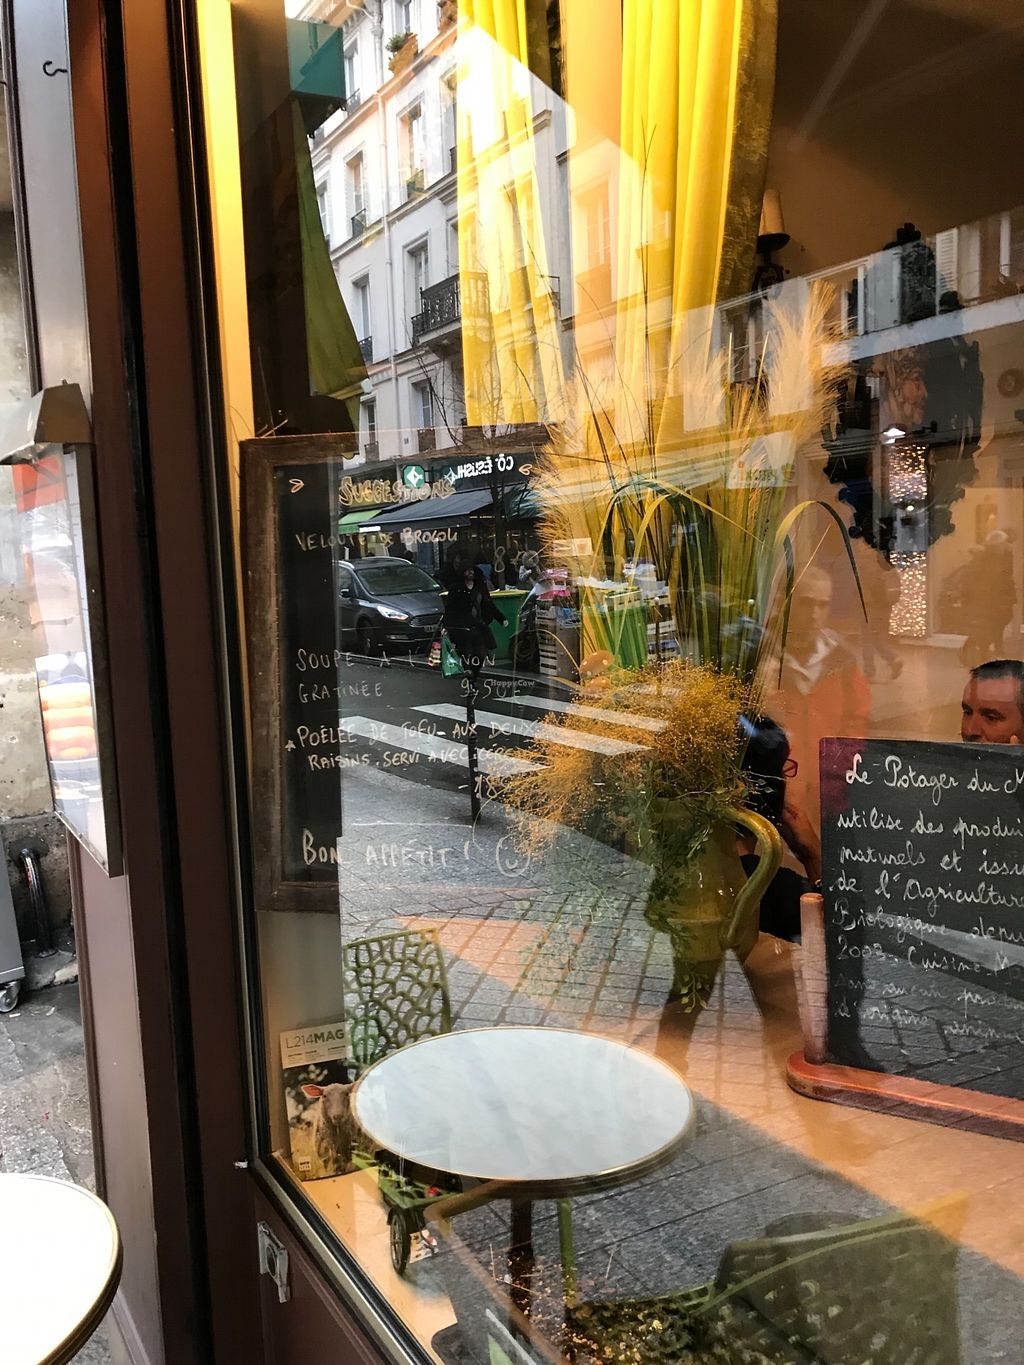 """Photo of Le Potager du Marais  by <a href=""""/members/profile/TARAMCDONALD"""">TARAMCDONALD</a> <br/>Outside seating <br/> December 31, 2017  - <a href='/contact/abuse/image/4106/341117'>Report</a>"""